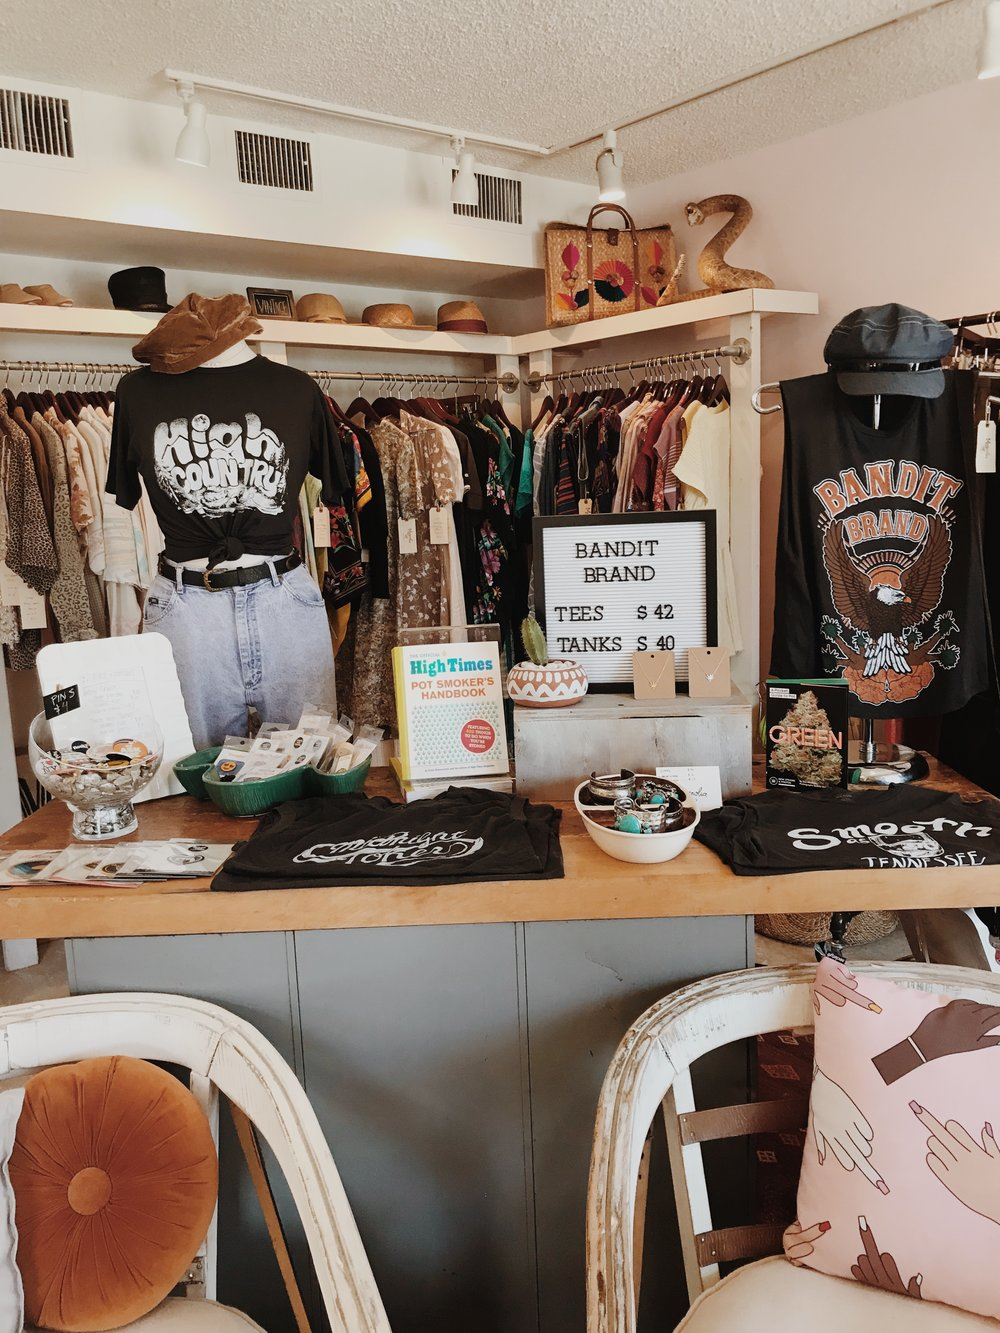 Shopping: Magnolia Supply - Magnolia Supply really is every girl's dream. Their sweet new pieces and their carefully curated vintage pieces allow everyone to find something that suits them. Everything screams